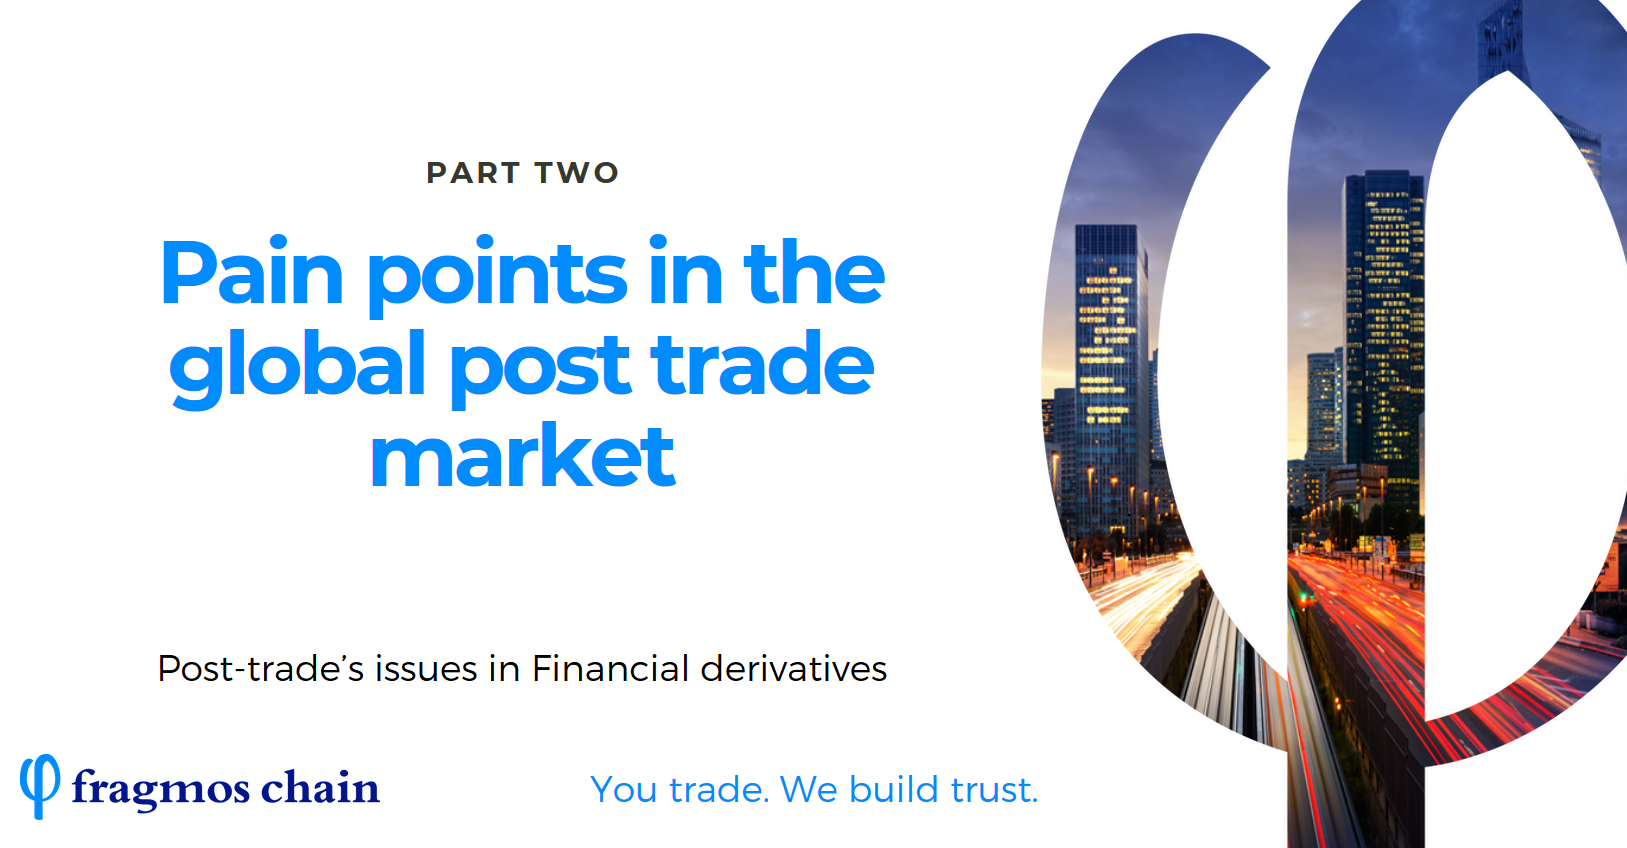 Part 2: Pain points in the global post trade market – based on Fragmos Chain market study